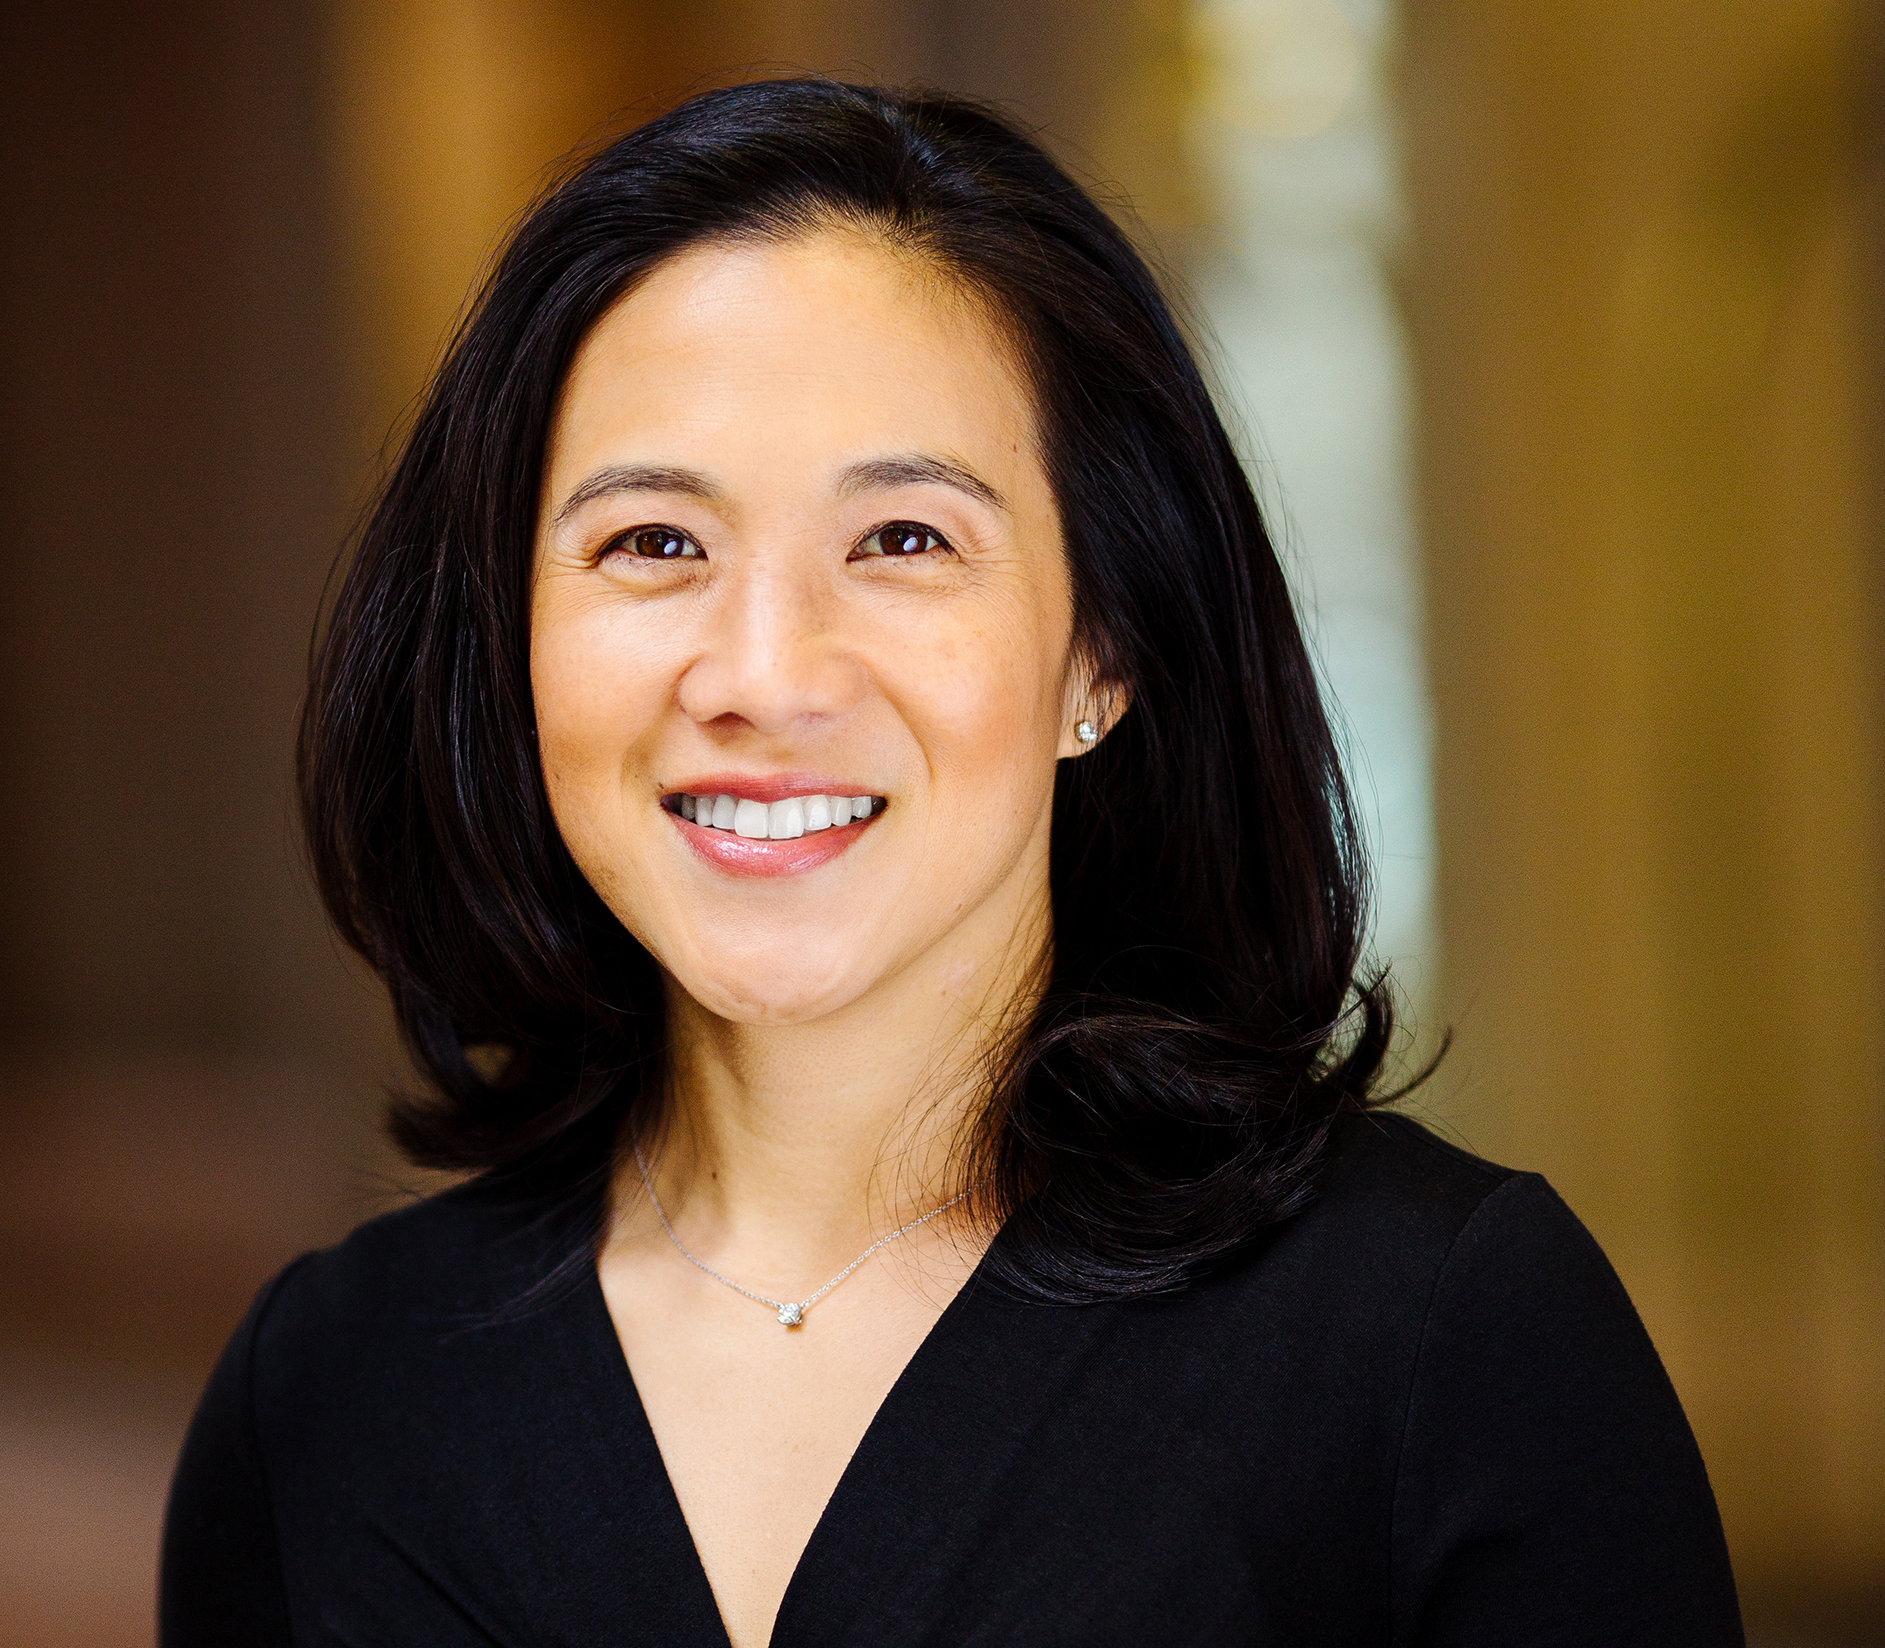 Positively Gritty: A Conversation with Dr. Angela Duckworth